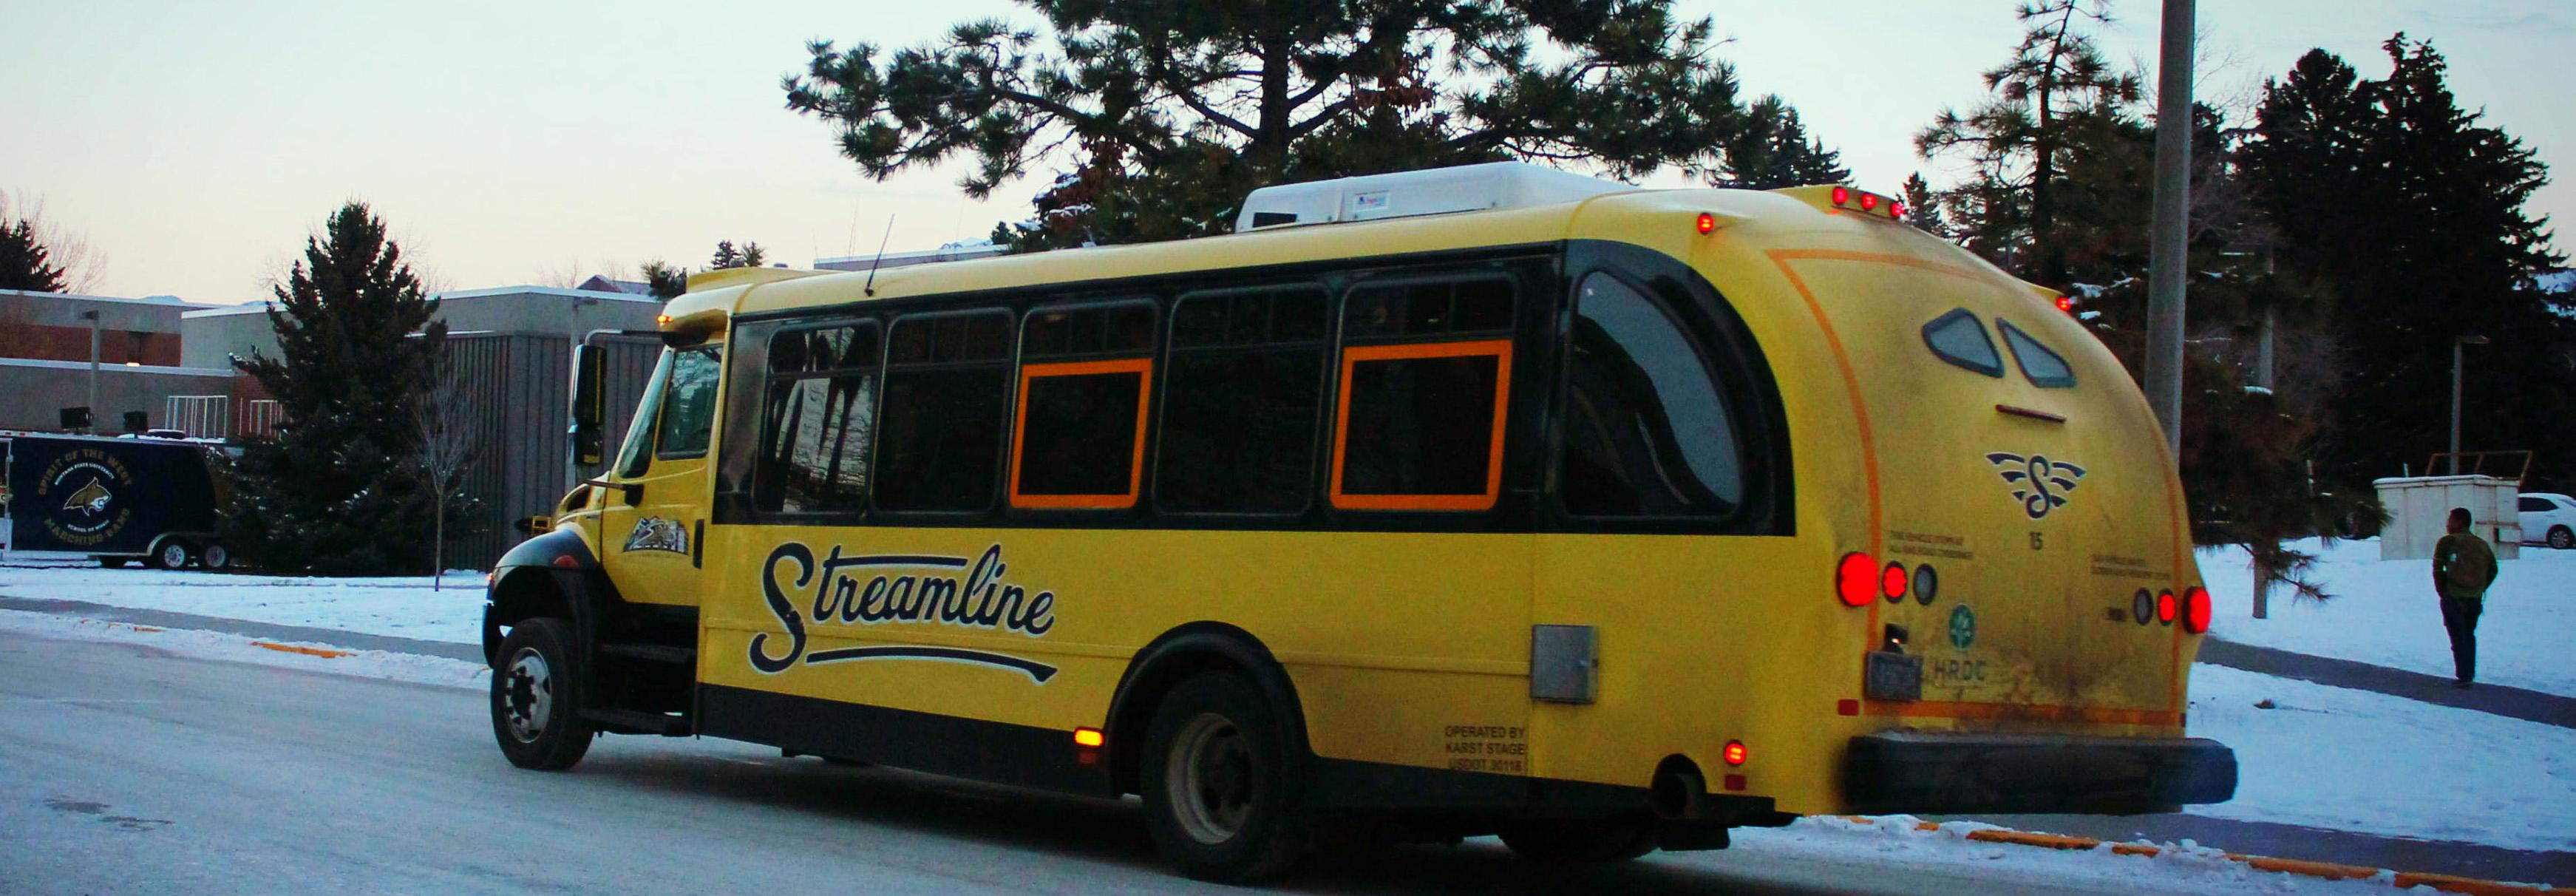 The Streamline is a great way to get around.